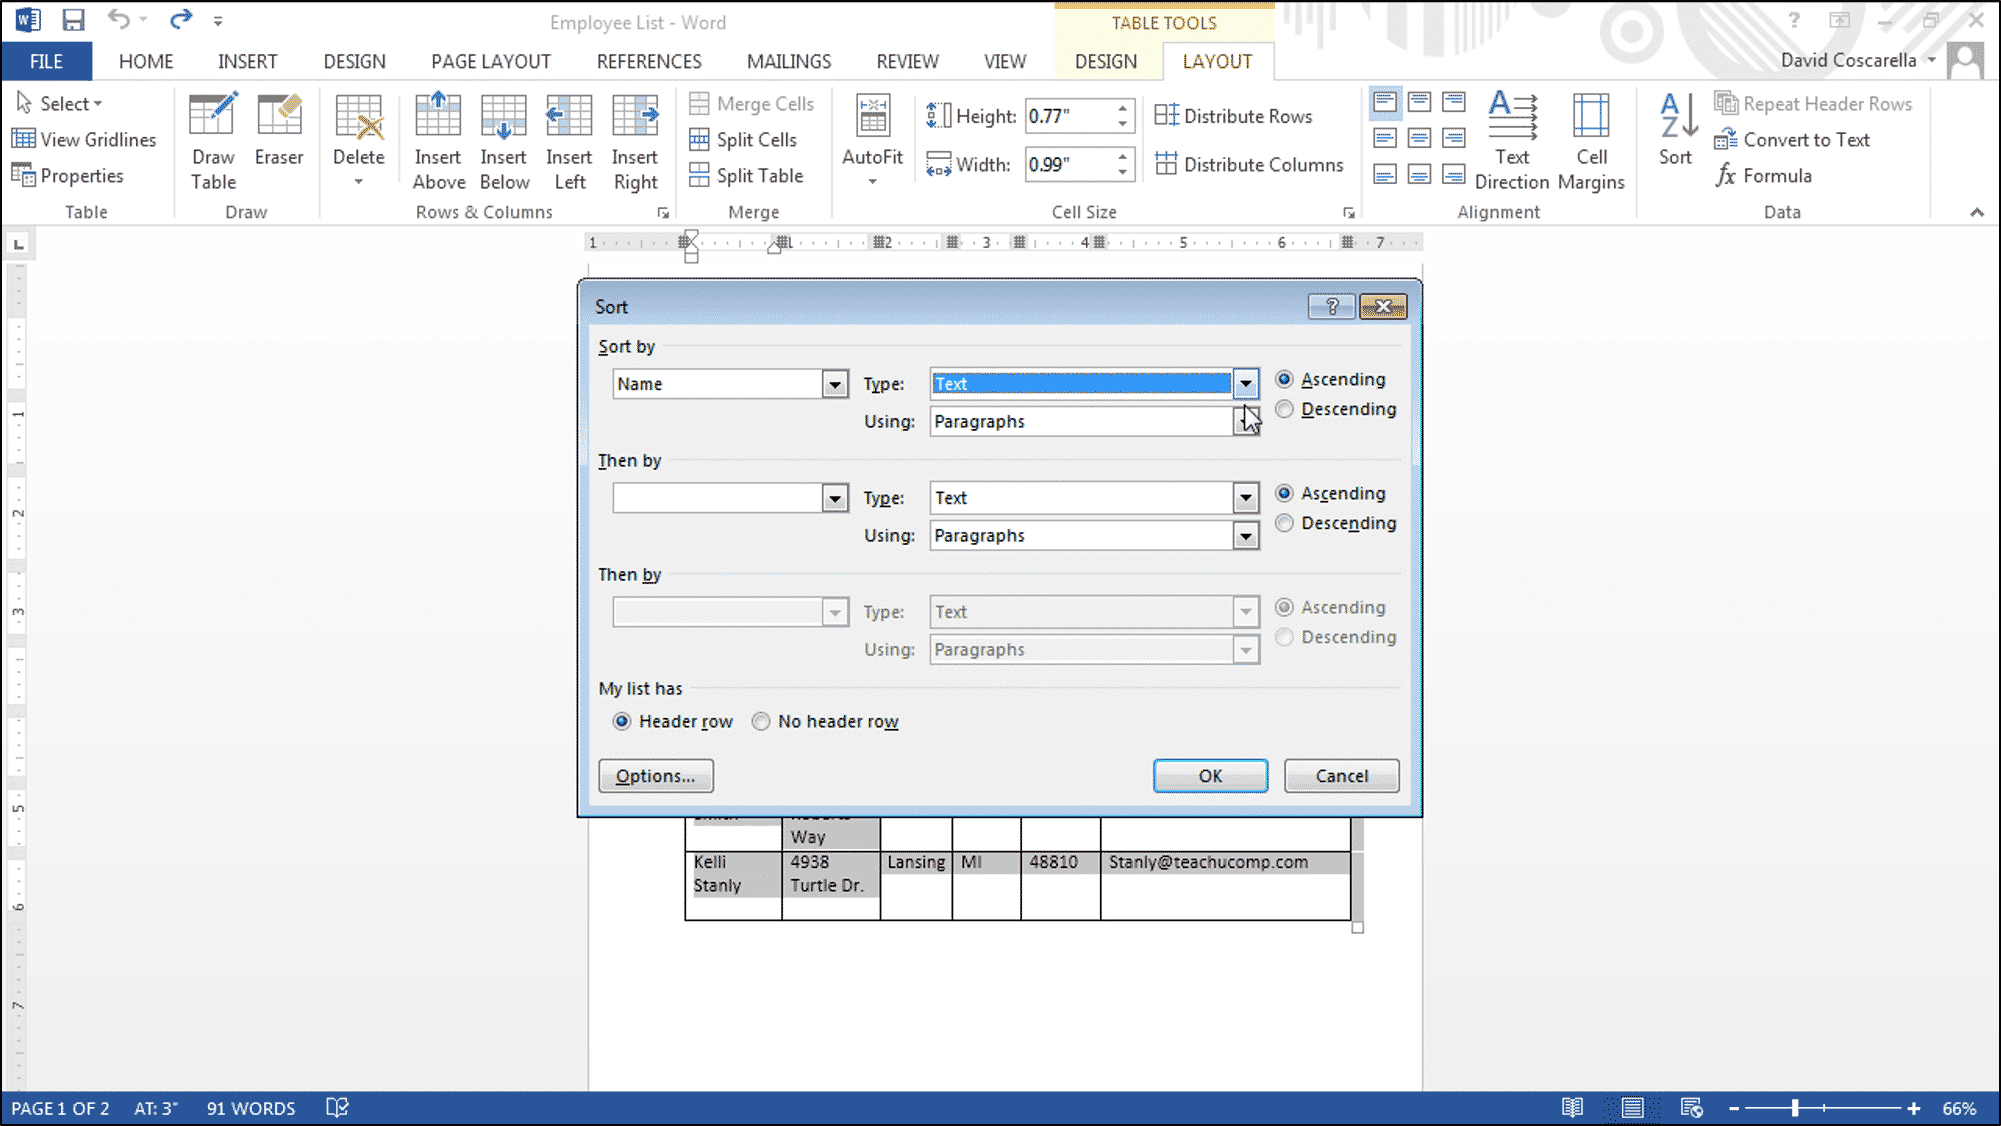 how to sort names alphabetically in ascending order in owrd